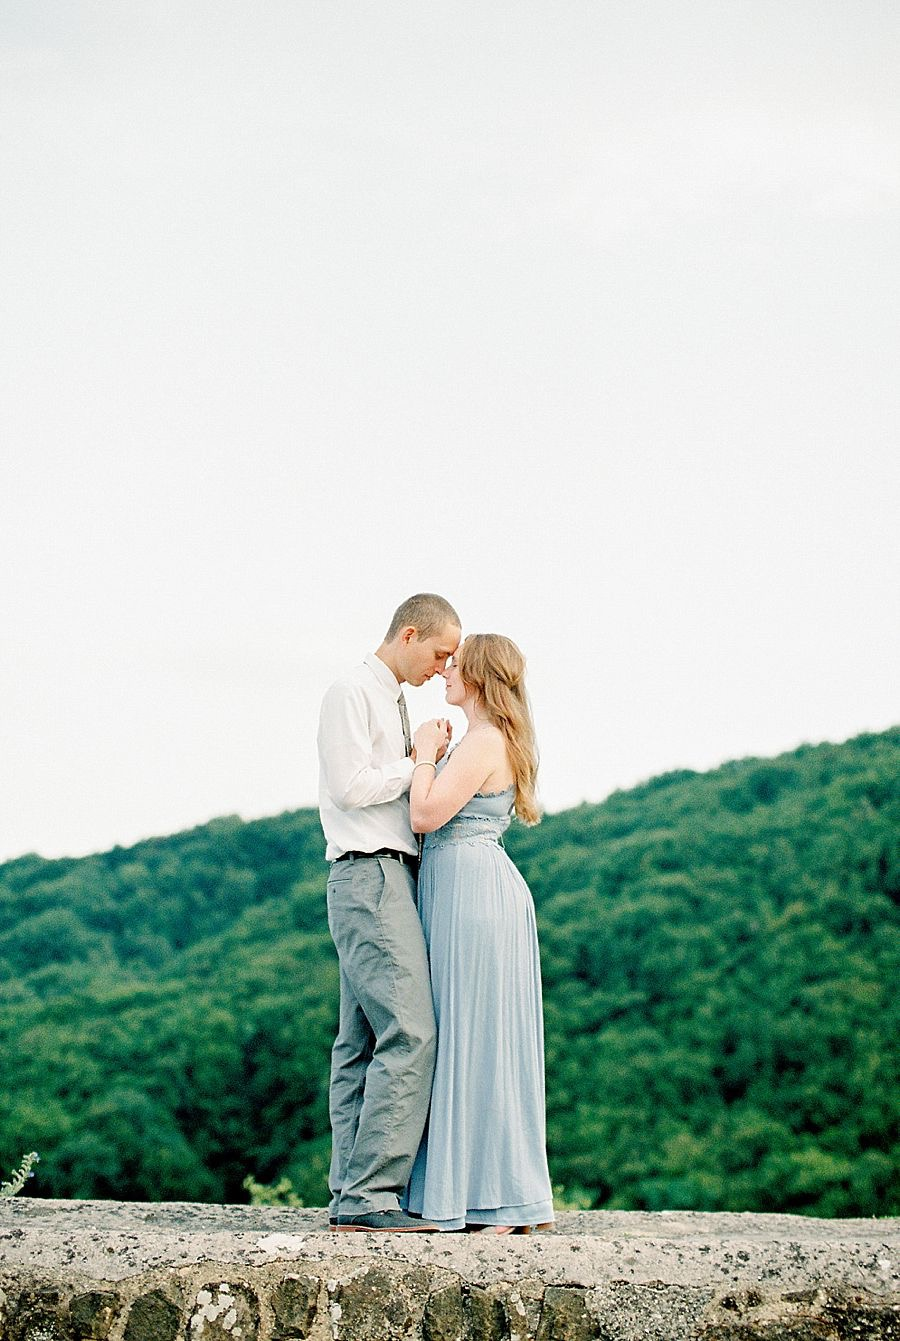 Germany Engagement Session Inspiration